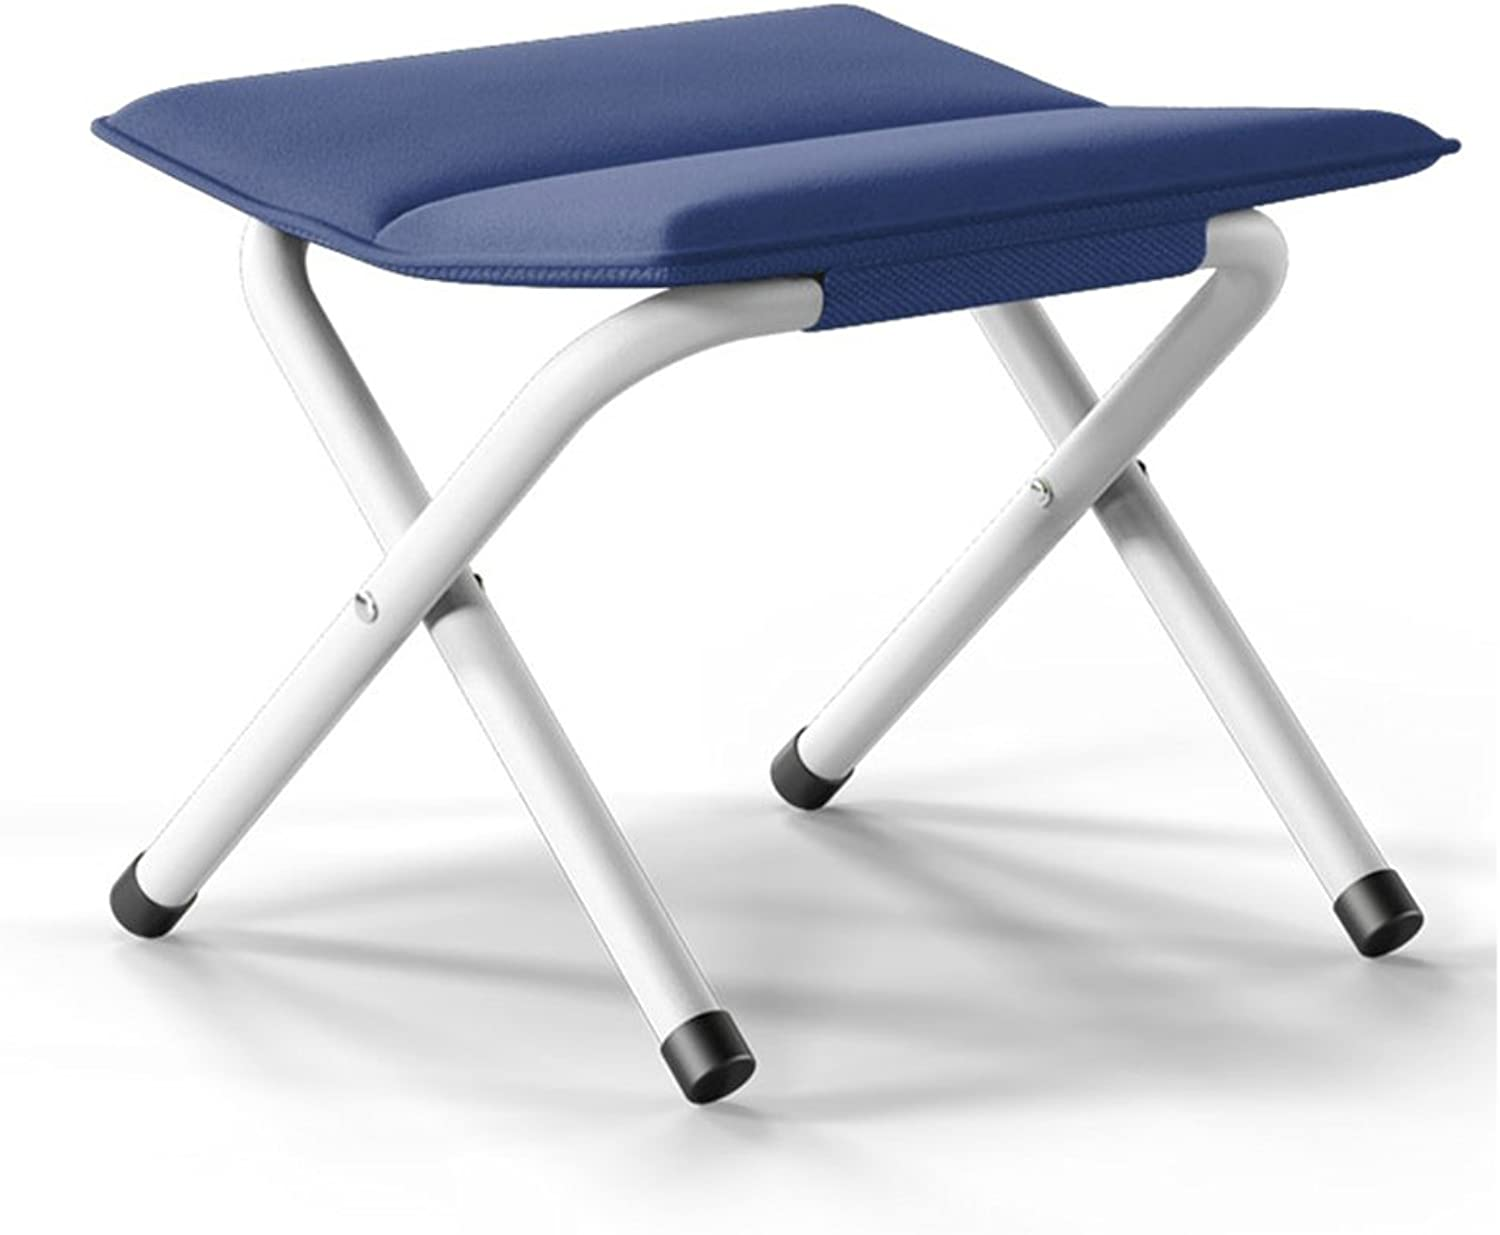 Chairs Folding Chair Stool Folding Stool Home Fishing Stool Small Bench shoes Bench Portable Stool (color   bluee, Size   33  33  34cm)